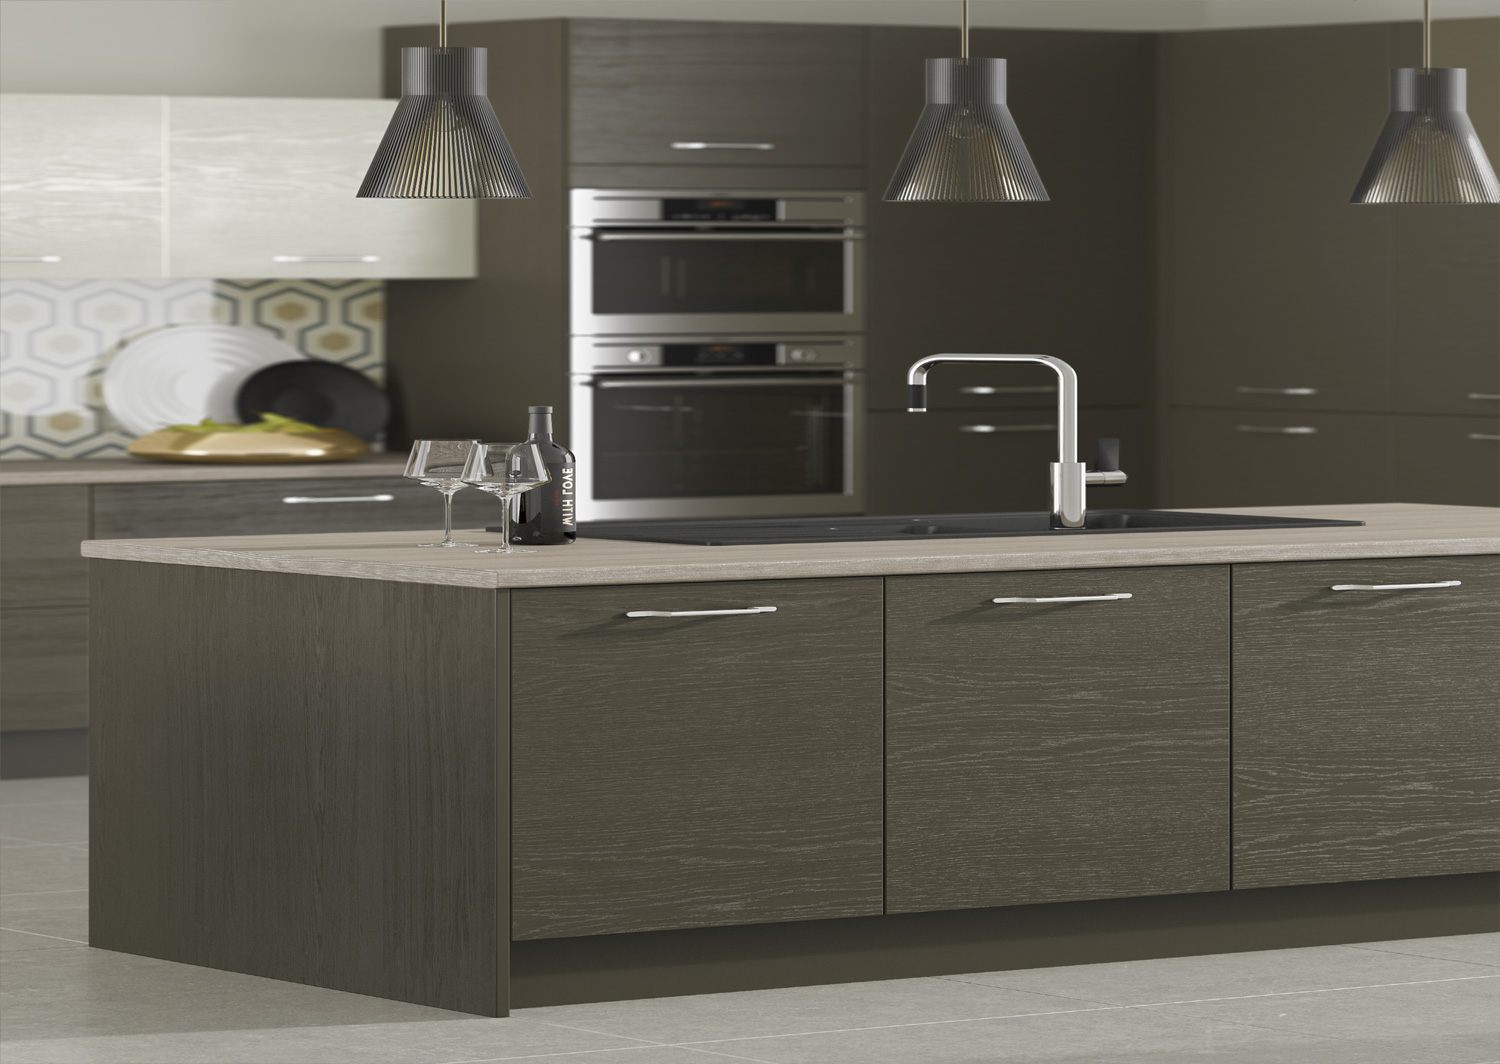 contemporary kitchen furniture detail. Über Chic And Exquisitely Crafted, Every Inch Of This Thoroughly Modern Kitchen Radiates A Contemporary Vibe. The Clean Lines Finishing Touches Create Furniture Detail